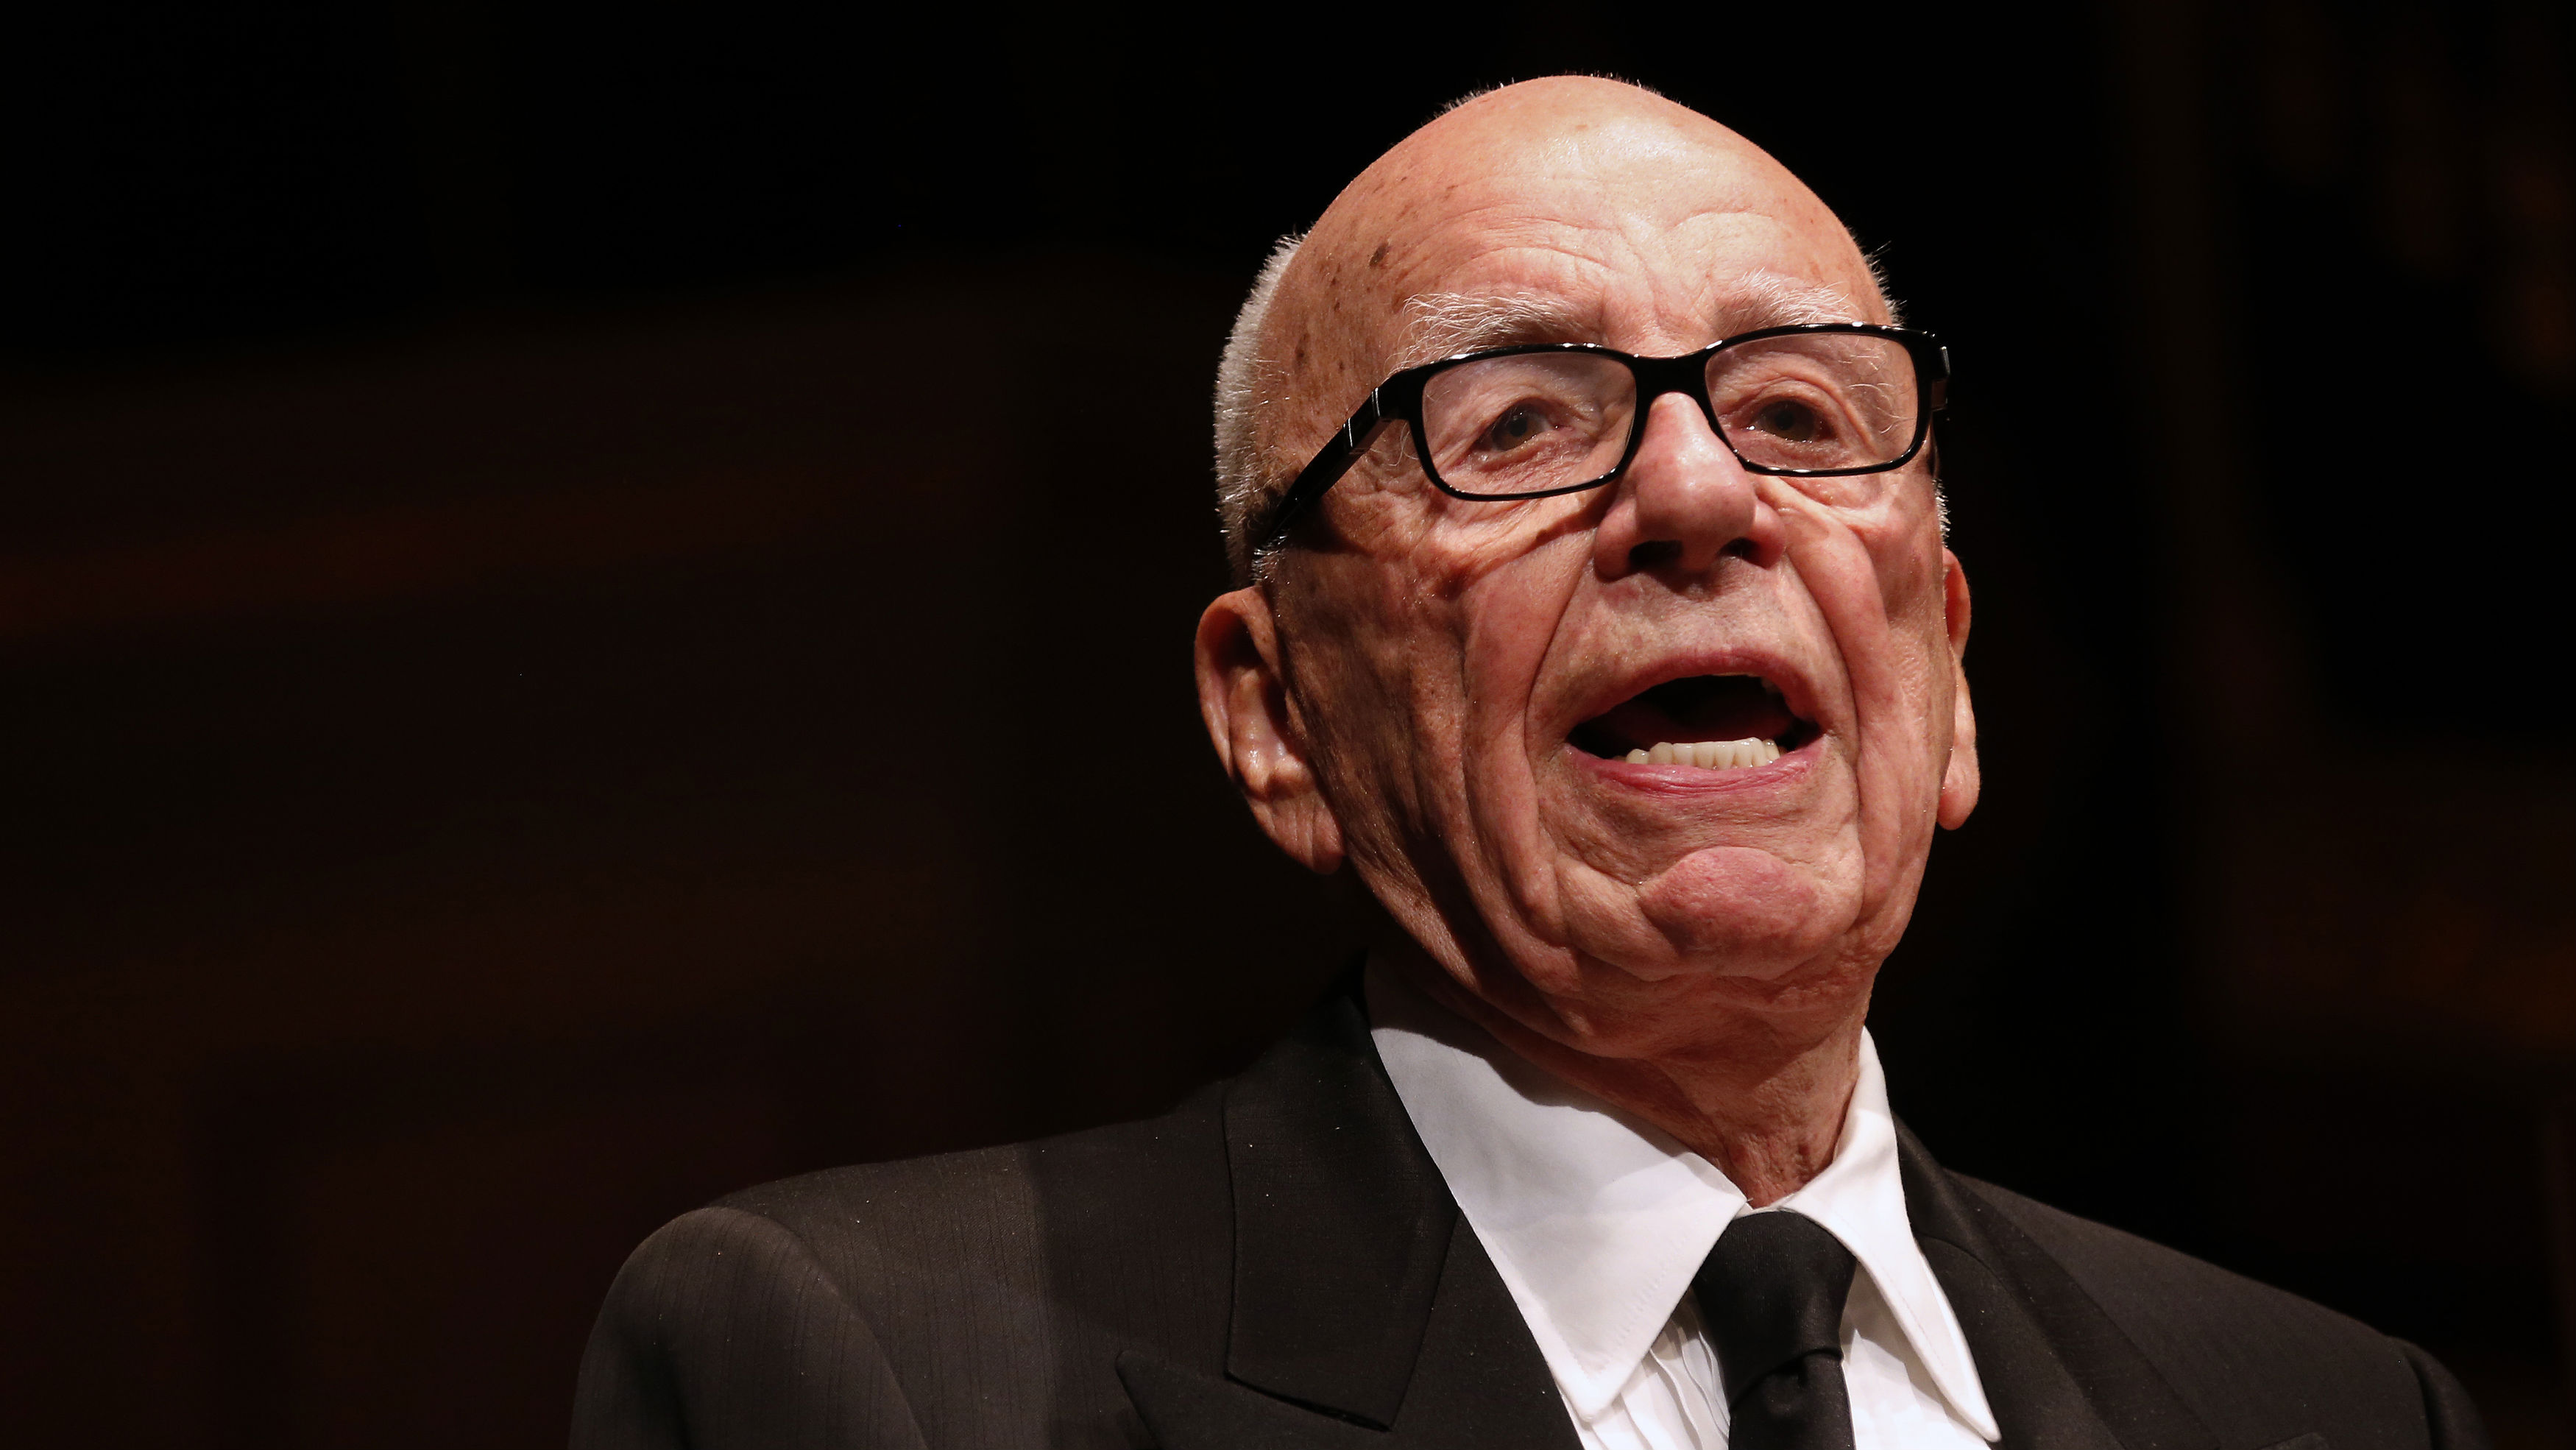 Rupert Murdoch, News Corp. and 21st Century Fox CEO, speaks during the annual Lowy Lecture at the Sydney Town Hall October 31, 2013. Australia should throw open its doors to immigrants to make the country more competitive, media mogul Rupert Murdoch said on Thursday, in contrast to his backing for the new government's tough policy on asylum seekers. Murdoch did not mention during the speech his former British newspaper chief, Rebekah Brooks, and others going on trial in London this week accused of conspiring to illegally access voicemail messages on mobile phones. REUTERS/David Gray